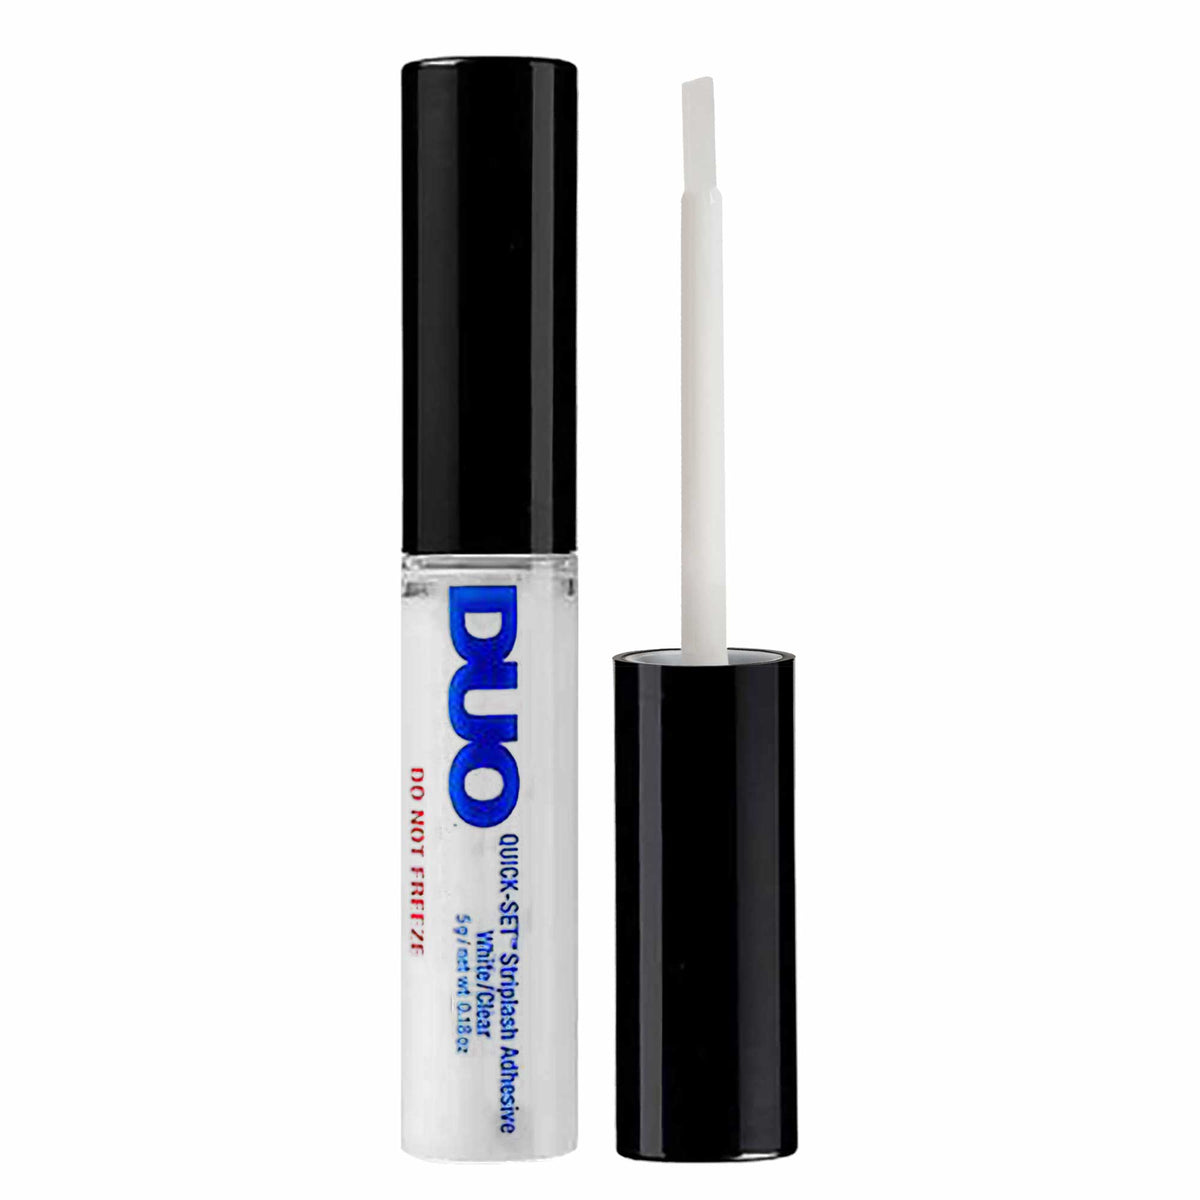 DUO Quick-Set Strip Lash Adhesive - Clear